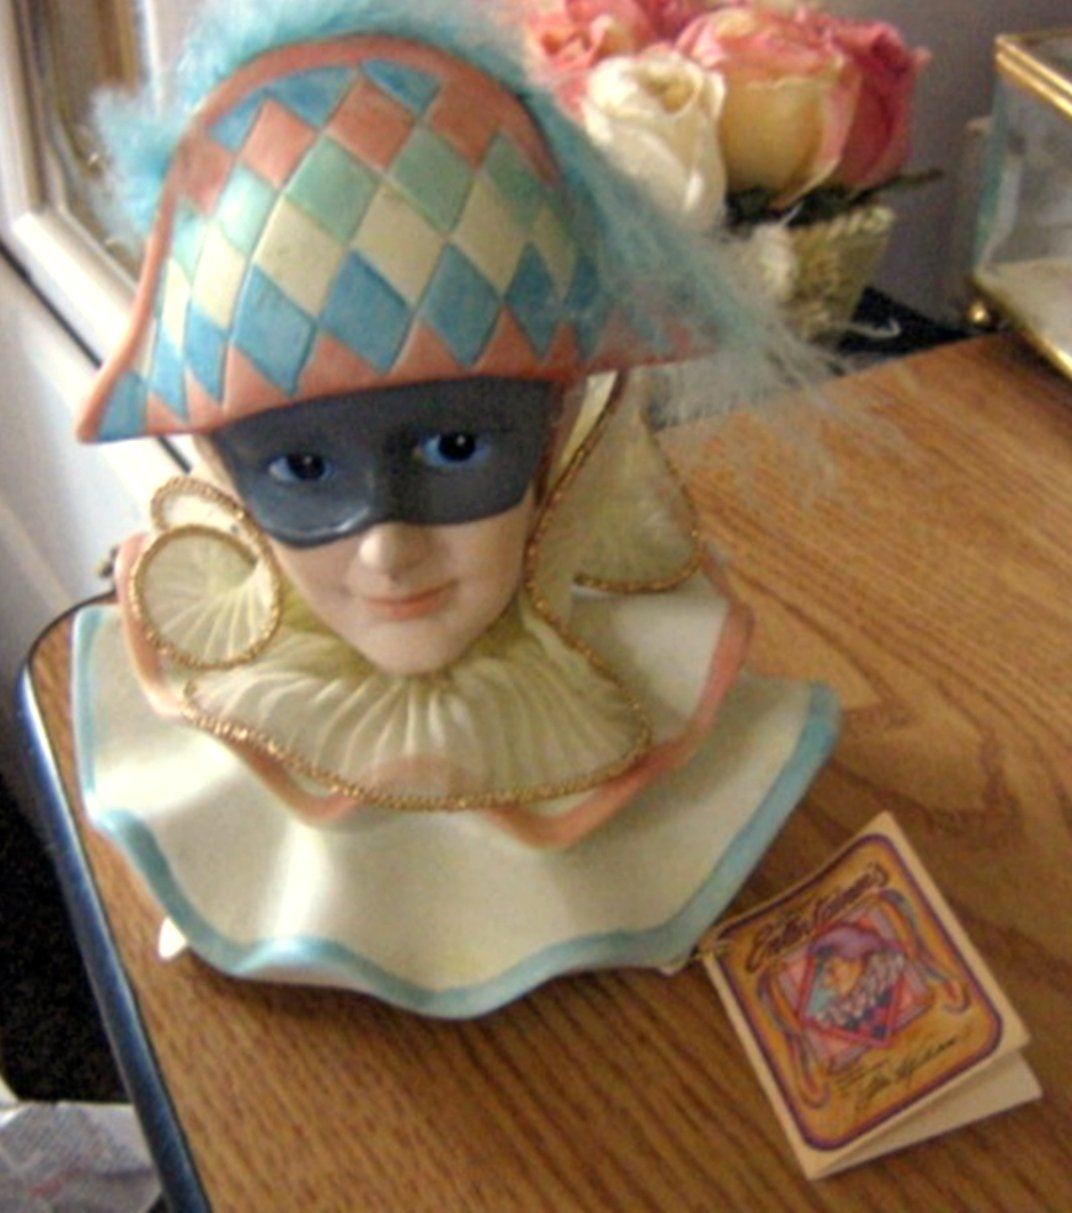 1988 Willetts The Entertainers Series Masked Clown Music Box Plays What I Did for Love  #400109